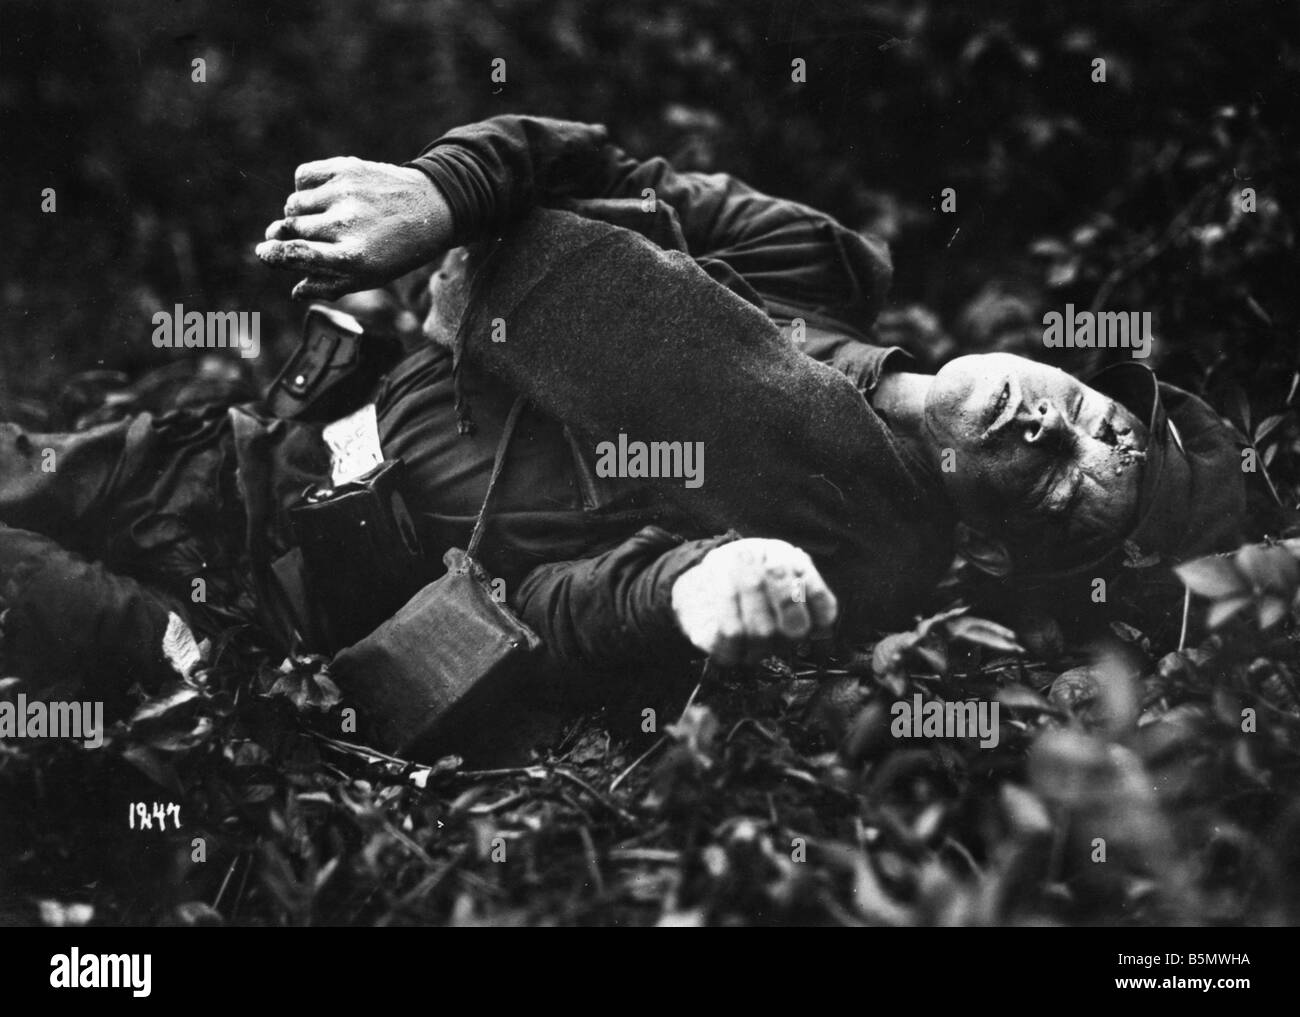 9RD 1914 0 0 A1 E Great War Russian Fallen Great War 1914 18 Russian Fallen Undated photogr - Stock Image